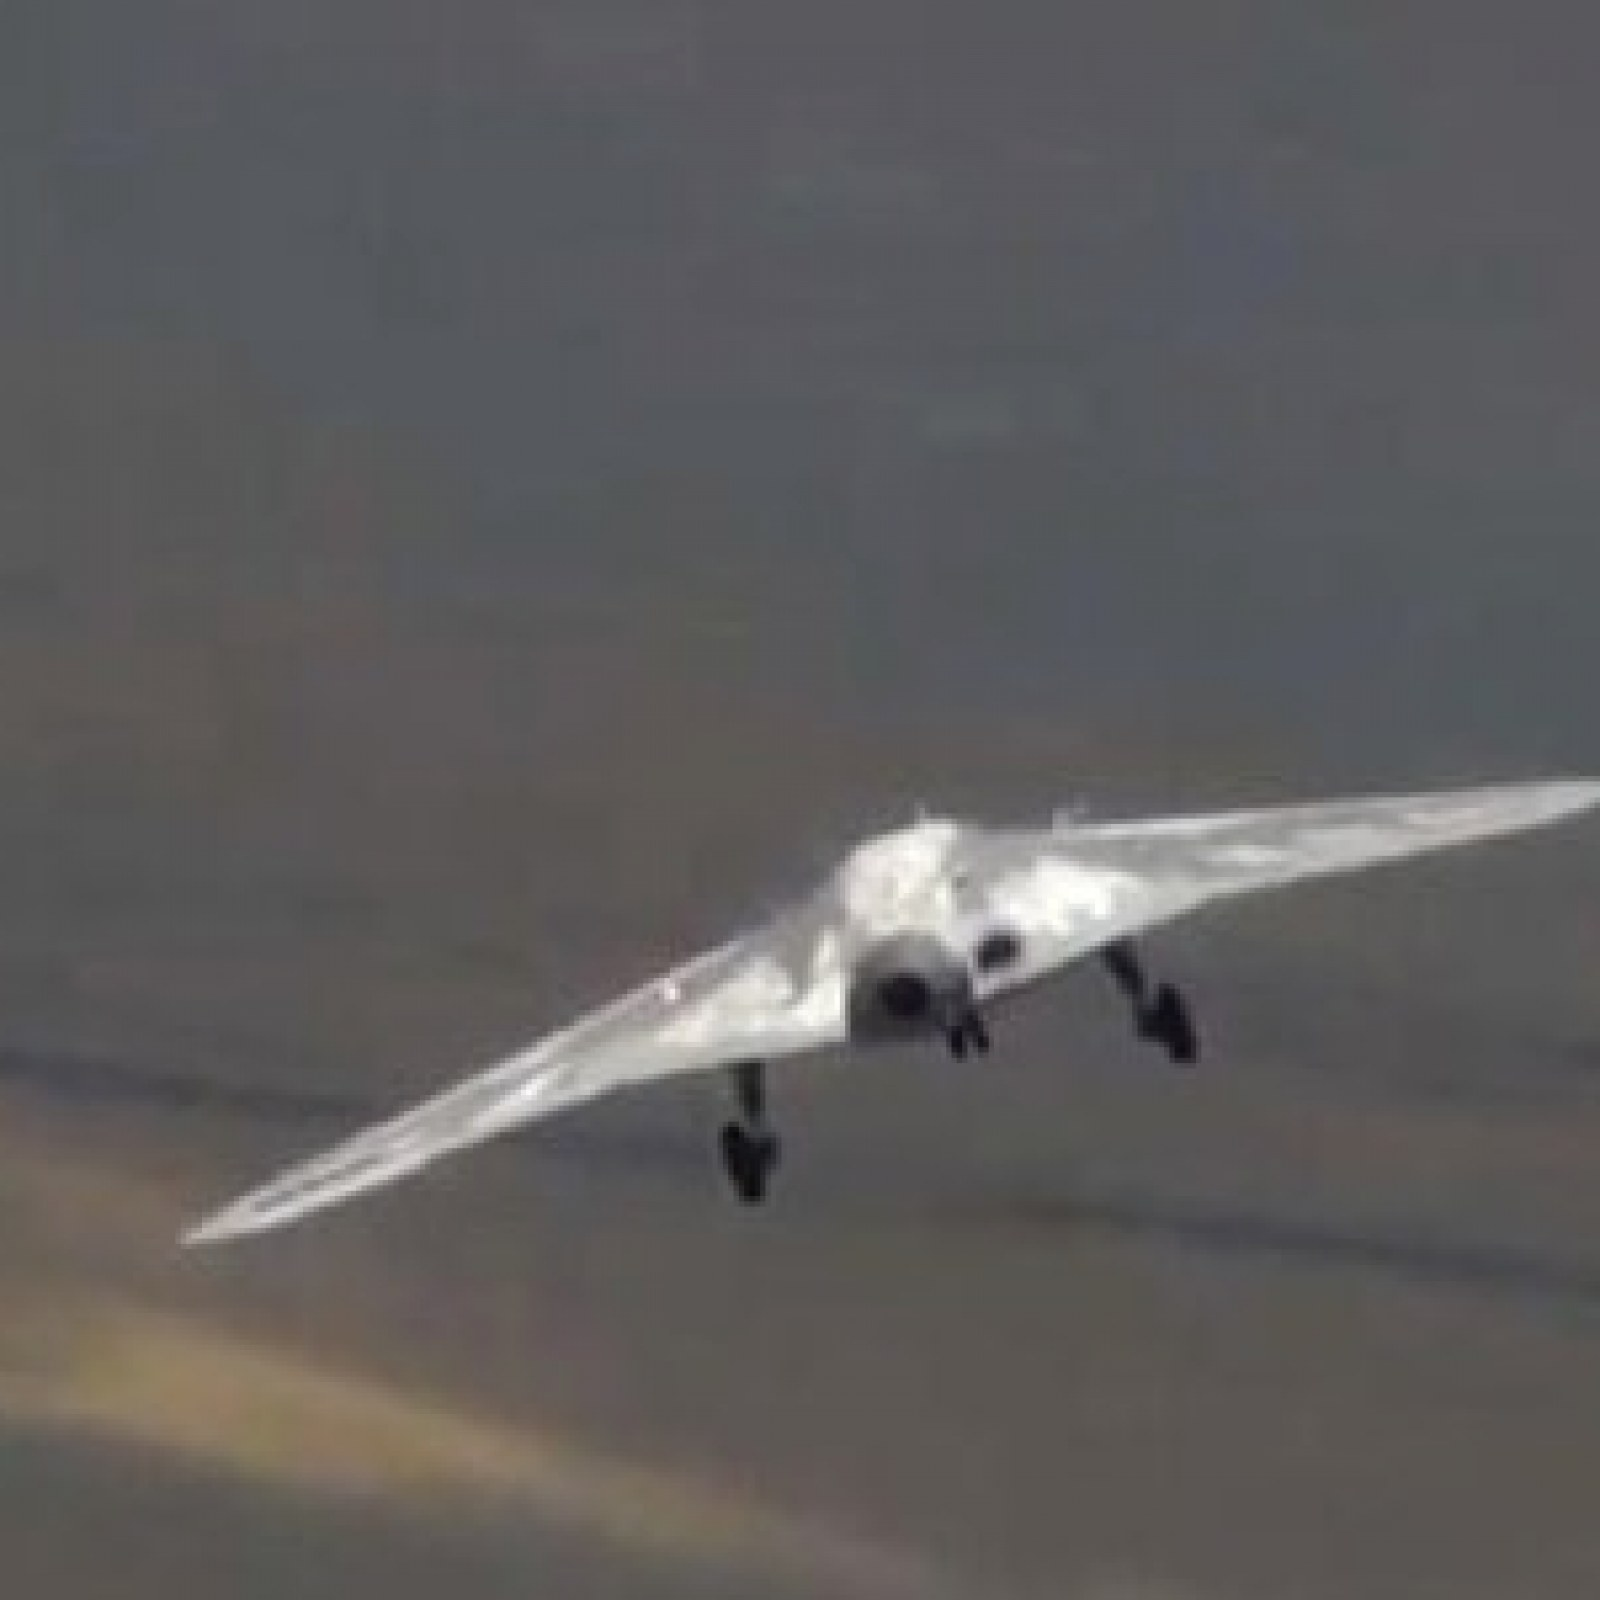 Video: Russia Unveils Secretive 'hunter' Stealth Drone in Footage of